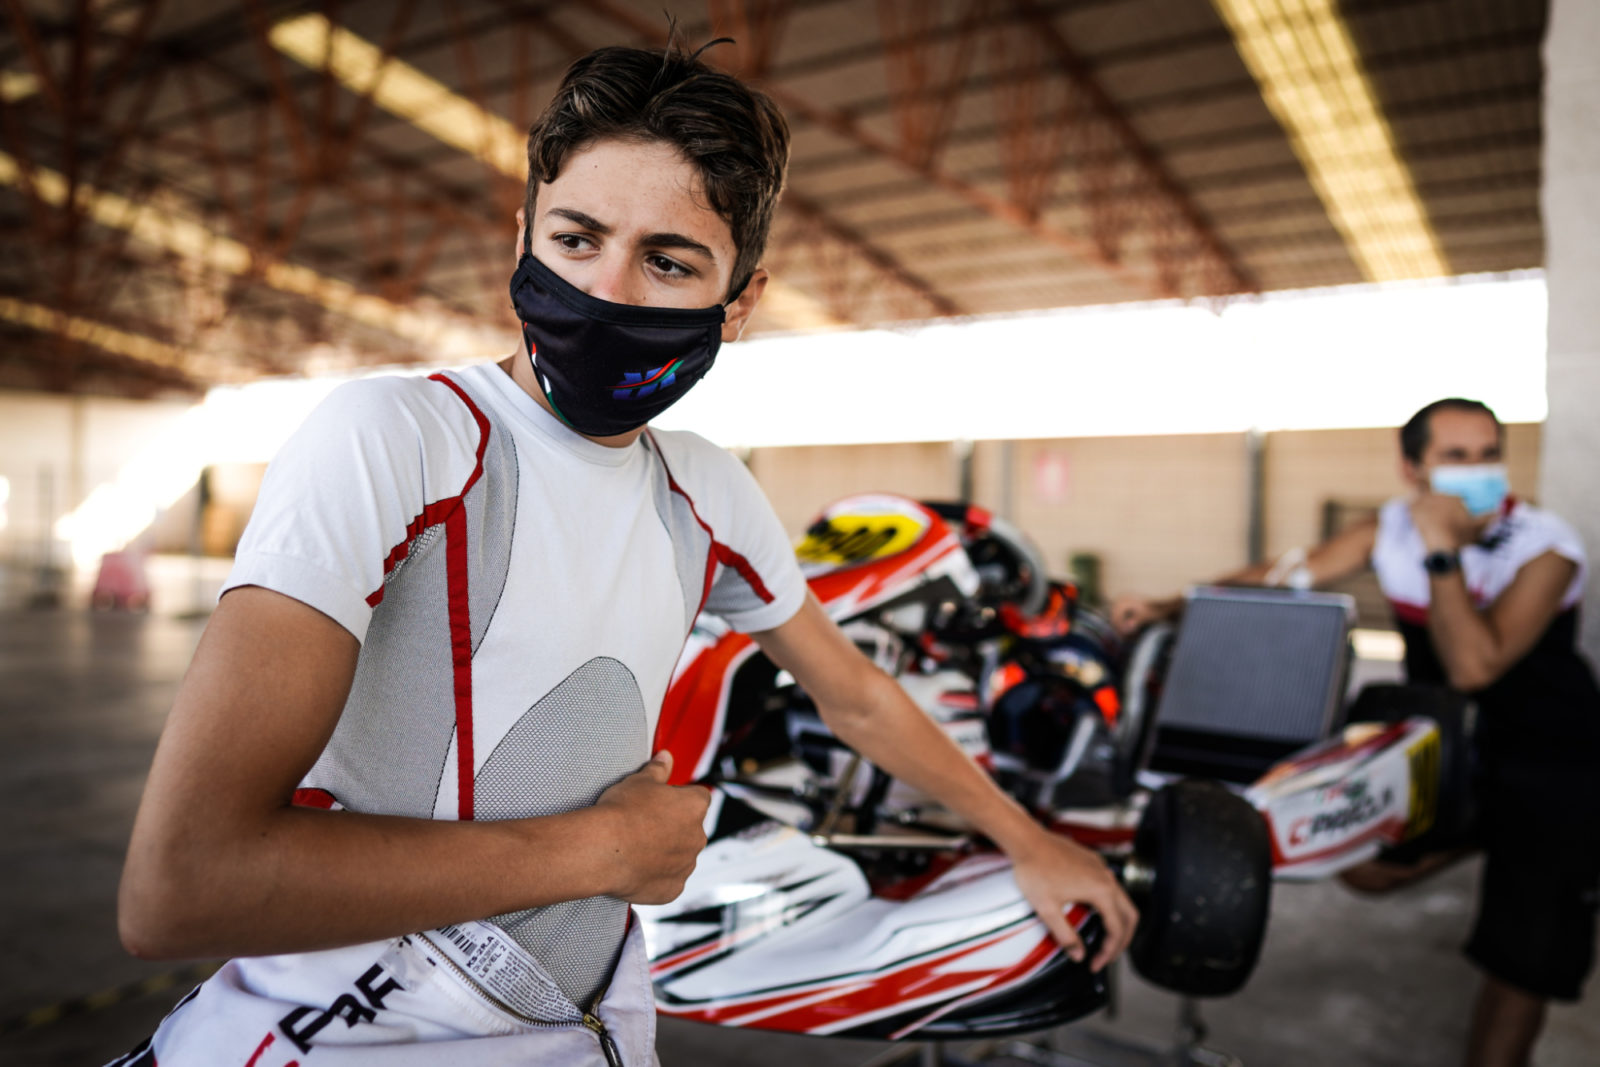 A young driver wears a medical protective mask at the first round of the 2020 FIA Karting European Championship